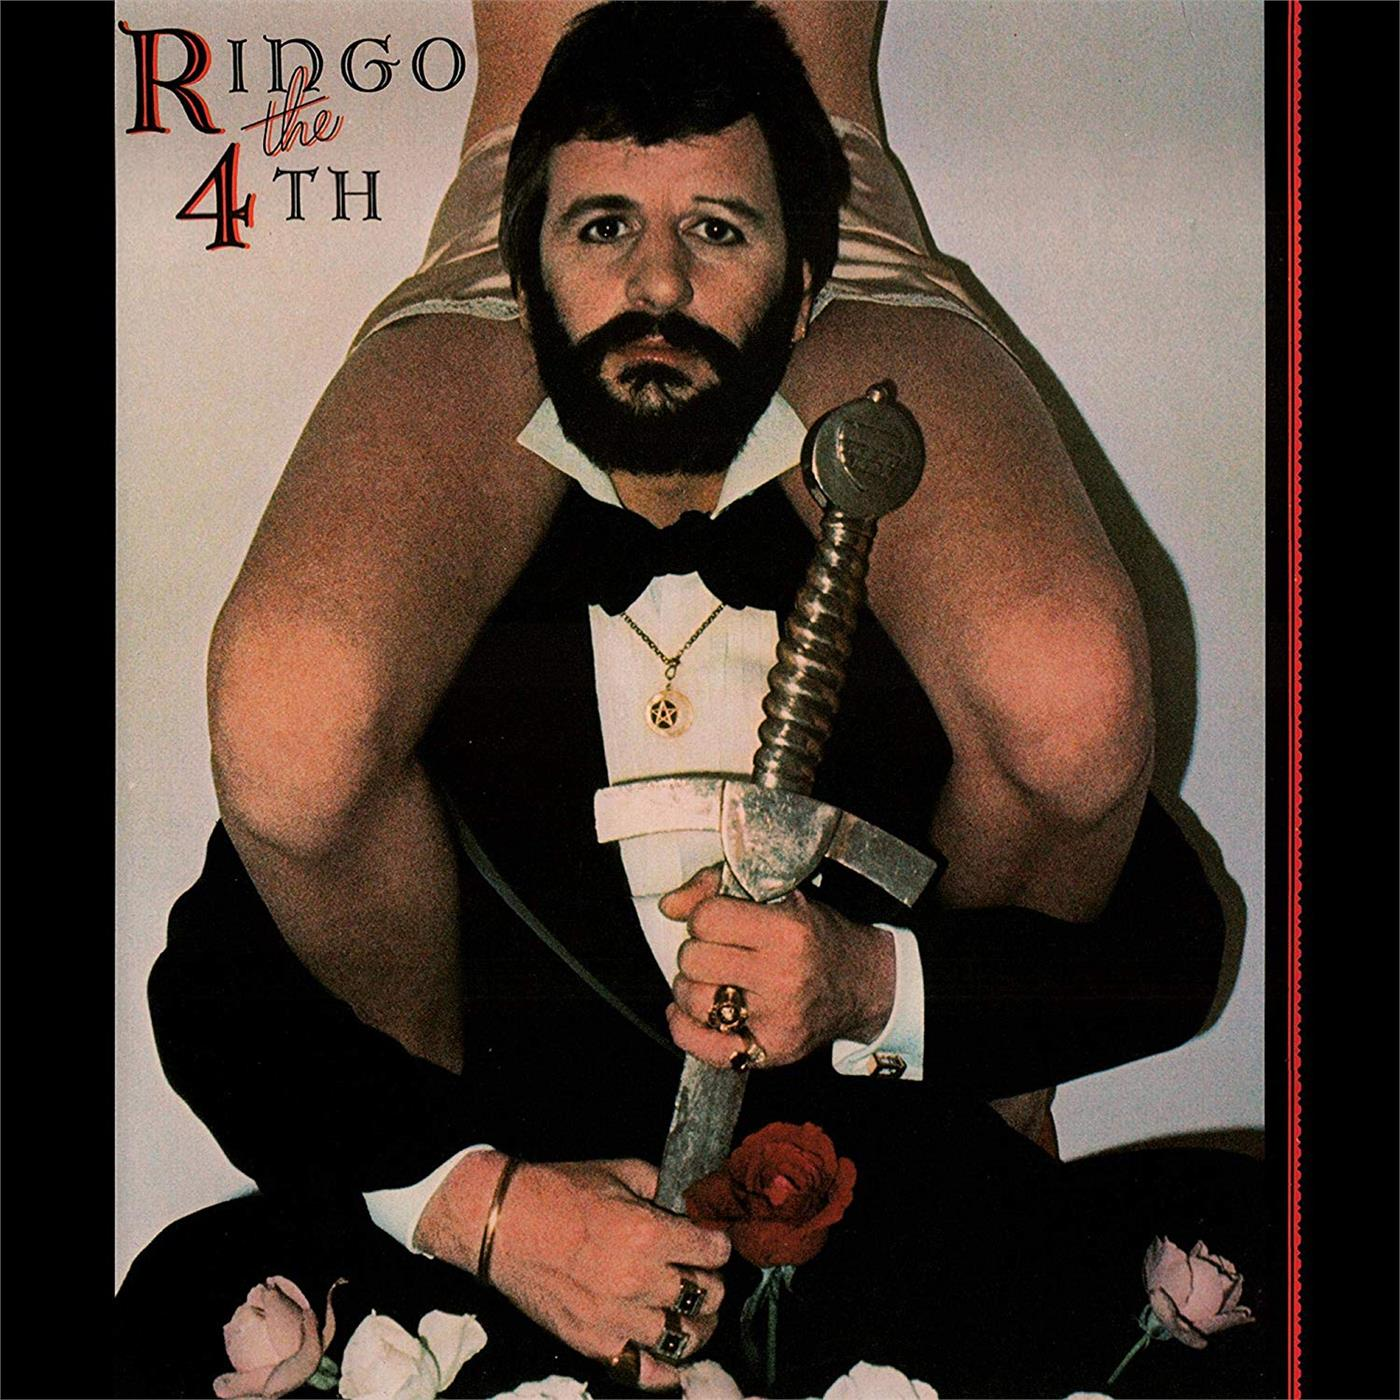 FRIM19998.1 Friday Music  Ringo Starr Ringo The 4th - LTD (LP)